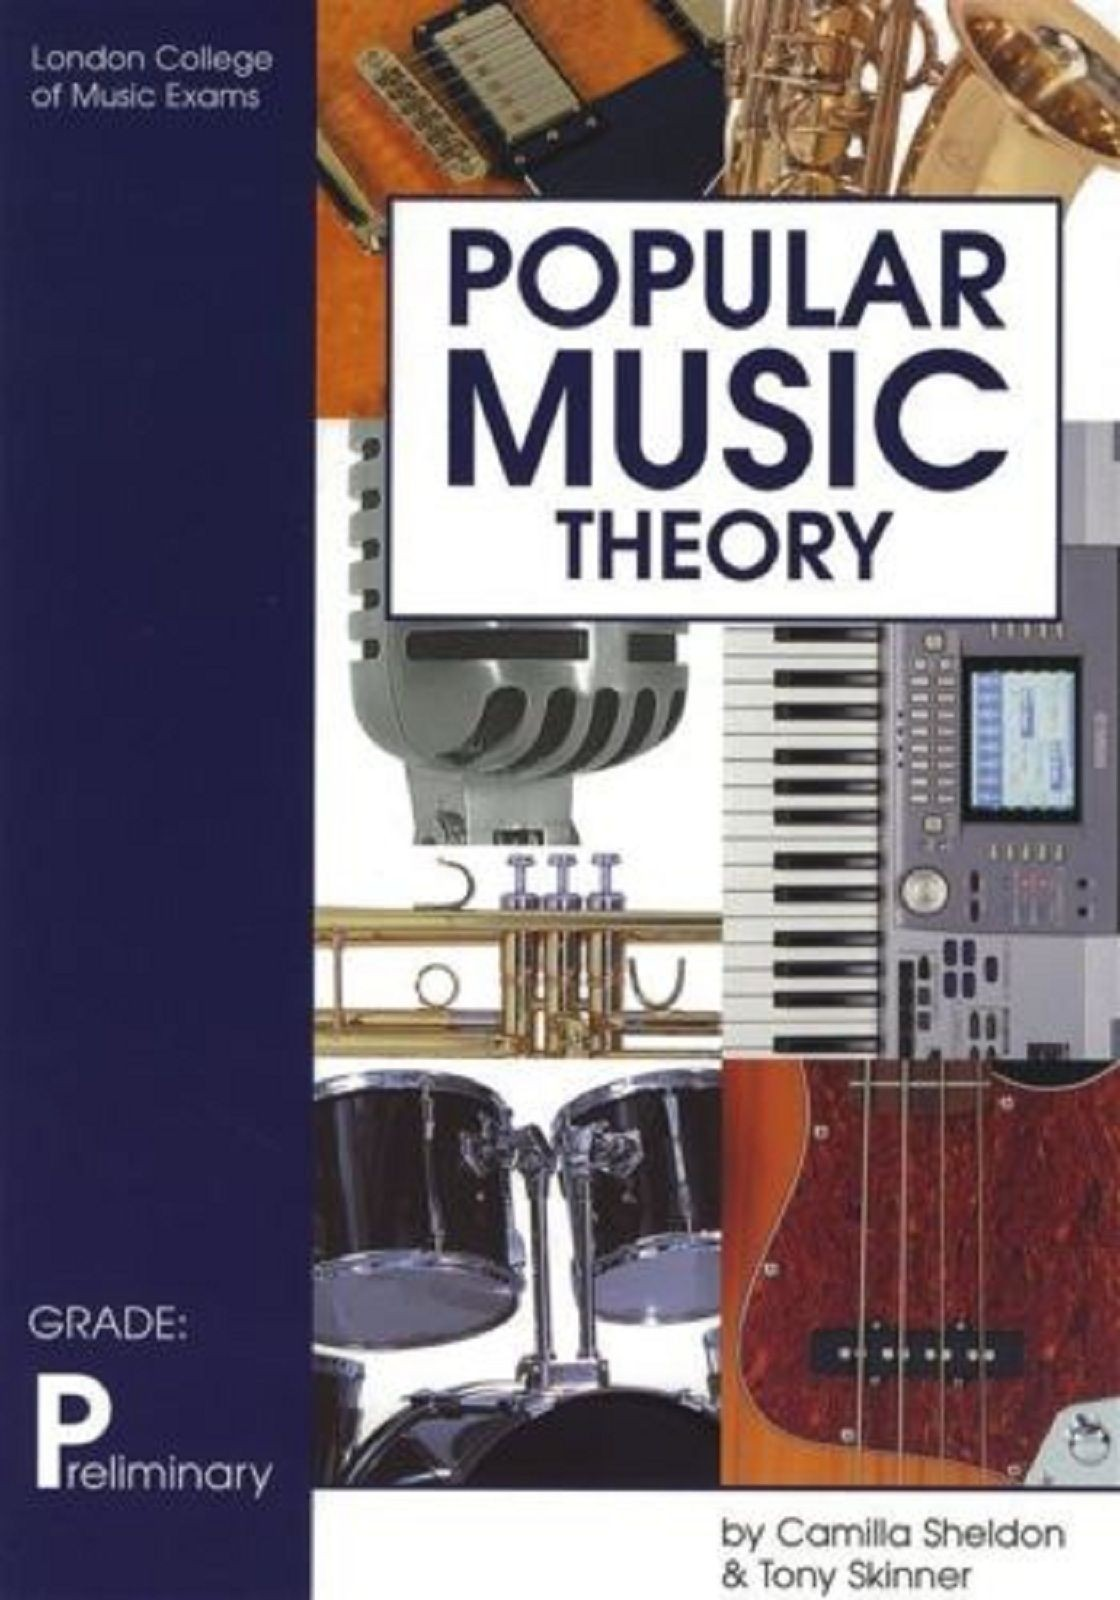 Popular Music Theory Grade Preliminary London College Of Music Exams Book S141